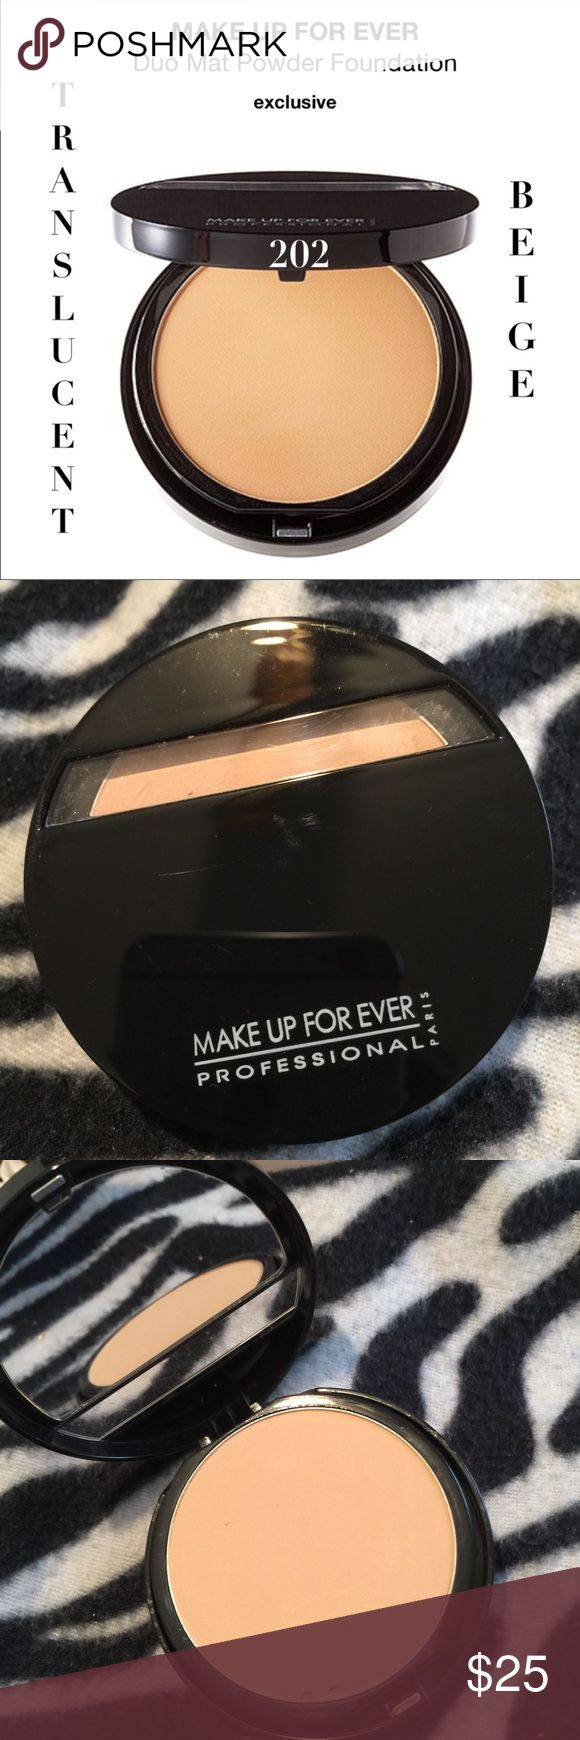 Make Up For Ever Duo Mat Powder Foundation NWT (With